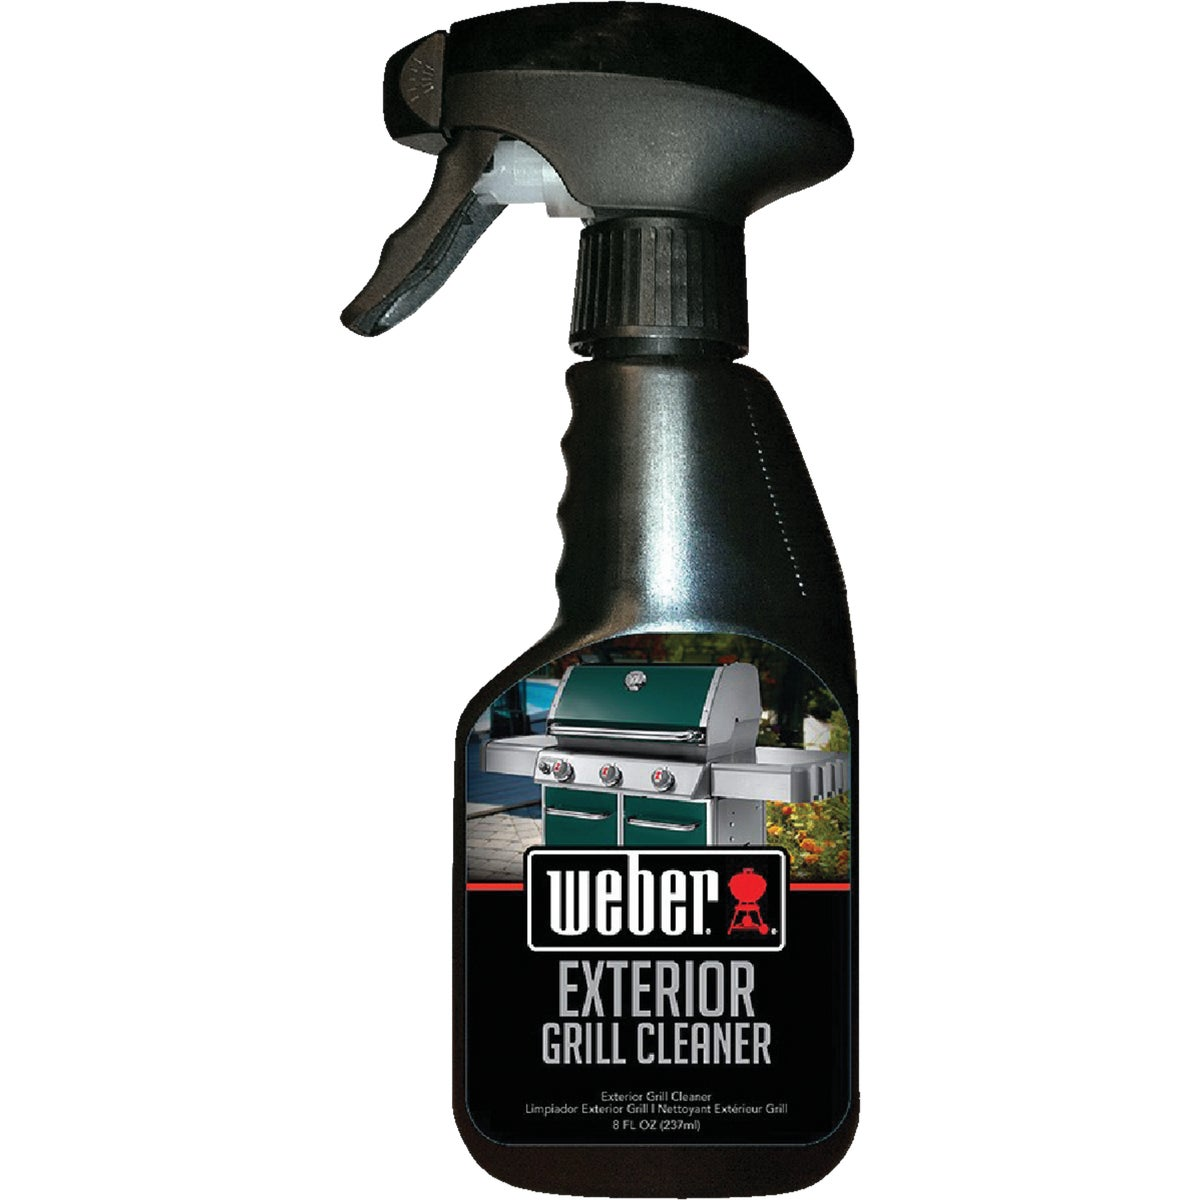 WEBER EXT GRILL CLEANER - W66 by Bryson Industries